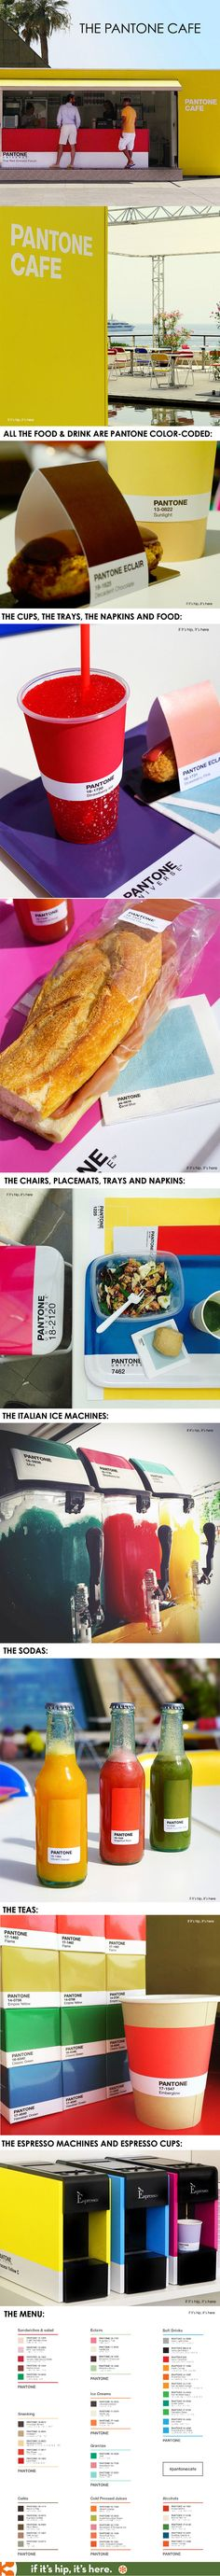 *swoon* The Pop-Up Pantone Cafe has color-coded food and drink, colorful packaging, decor, design and branding. Cafe Branding, Restaurant Branding, Branding Agency, Cafe Design, Food Design, Store Design, Web Design, Corporate Design, Retail Design